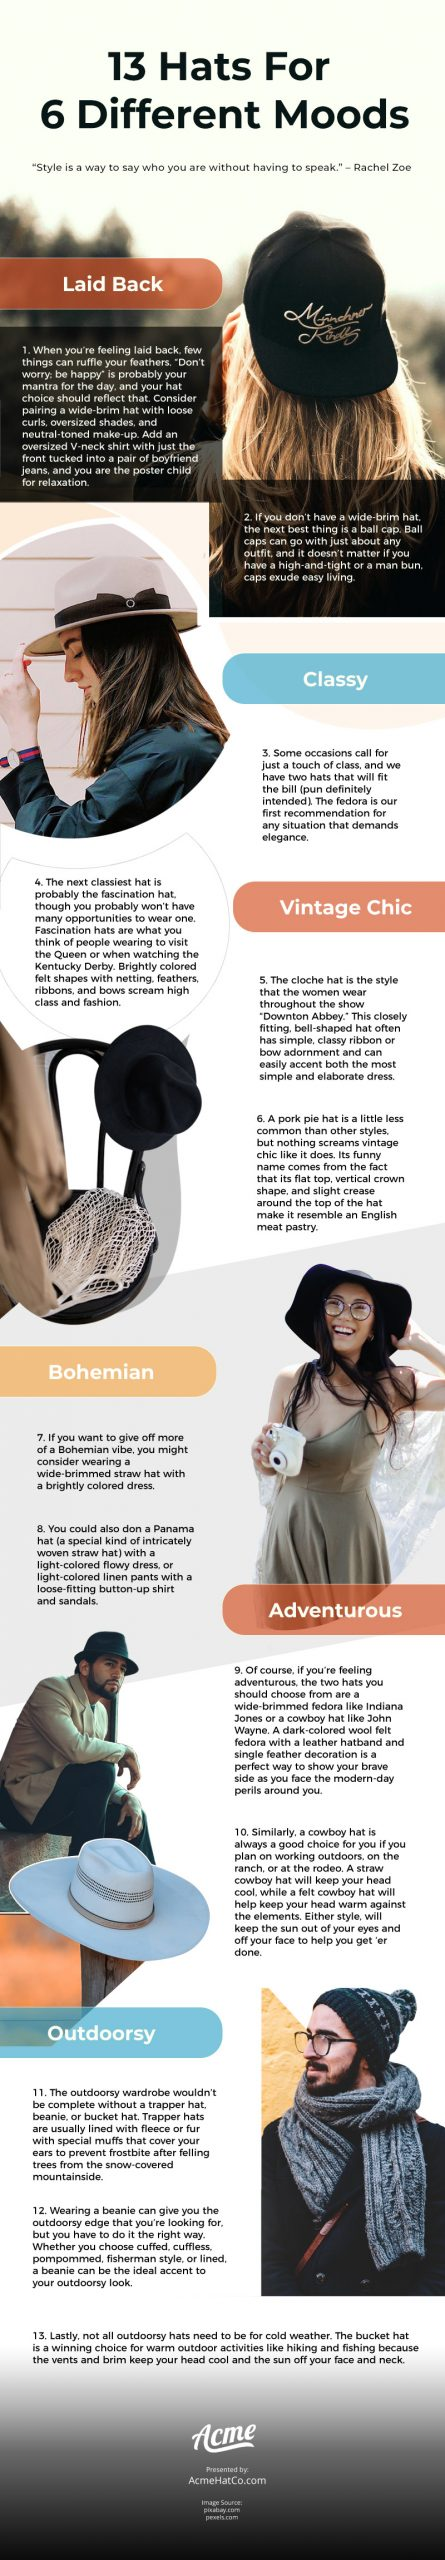 13 Hats For 6 Different Moods [infographic]